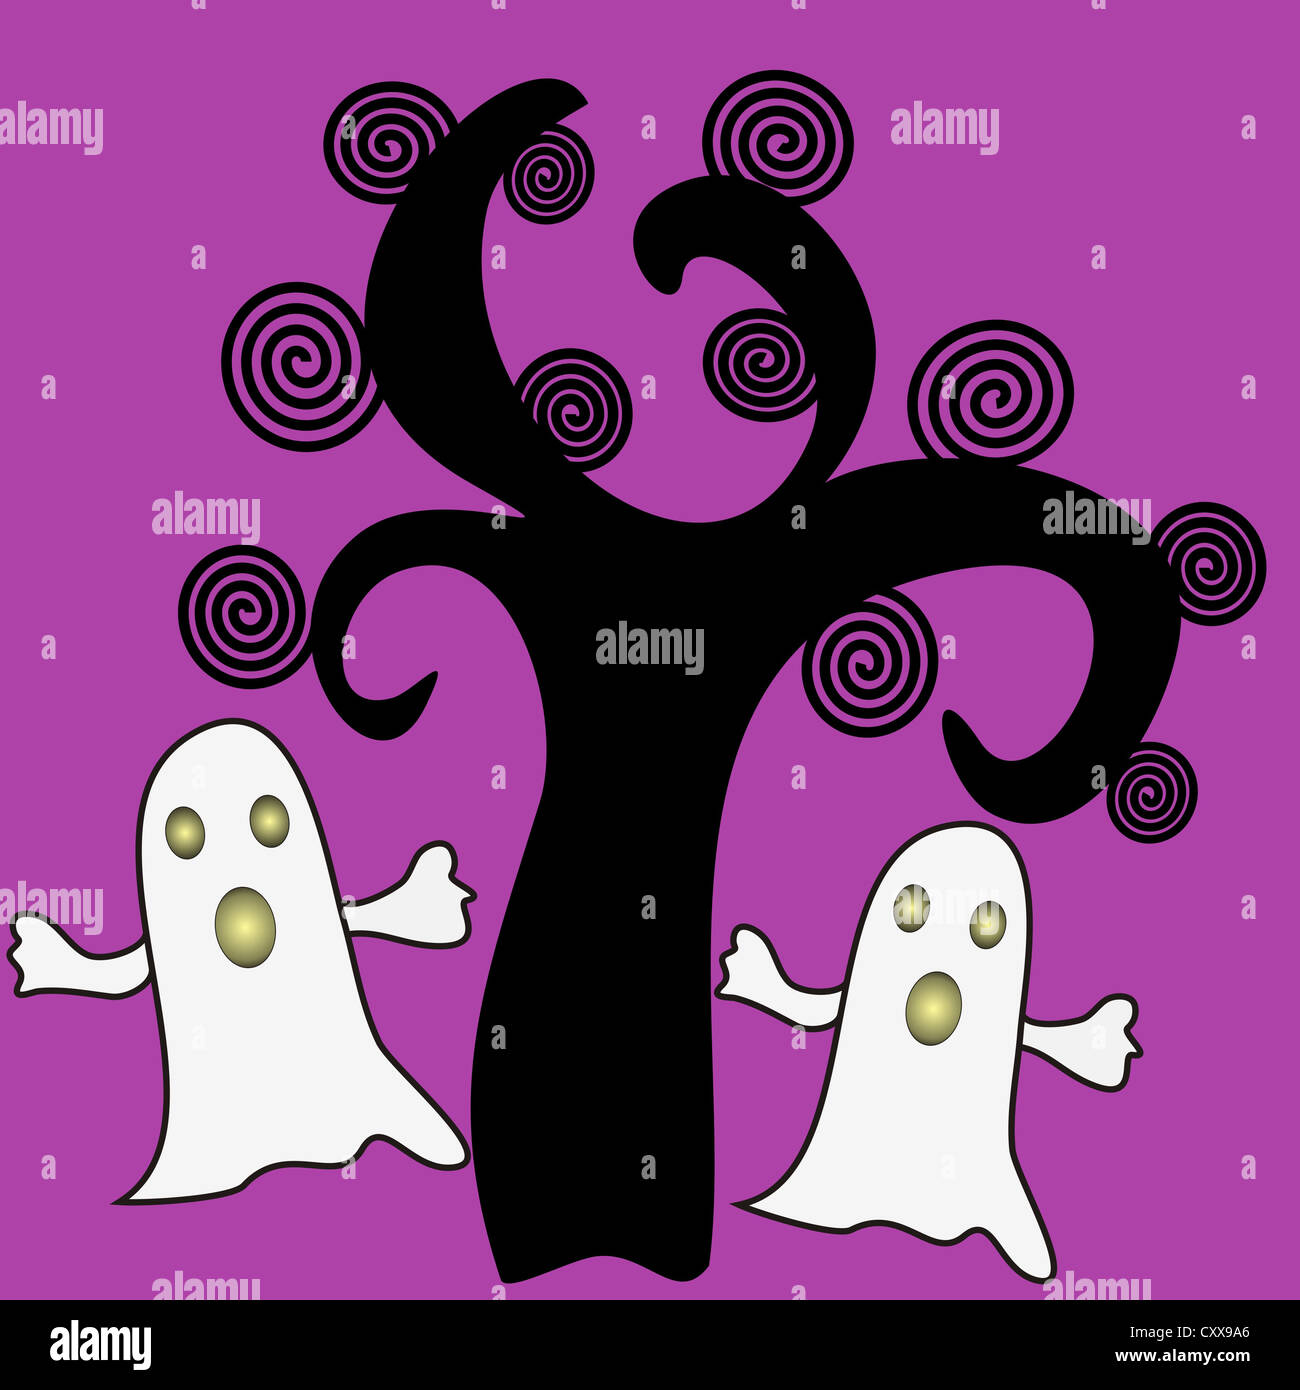 Black tree with ghosts design Stock Photo